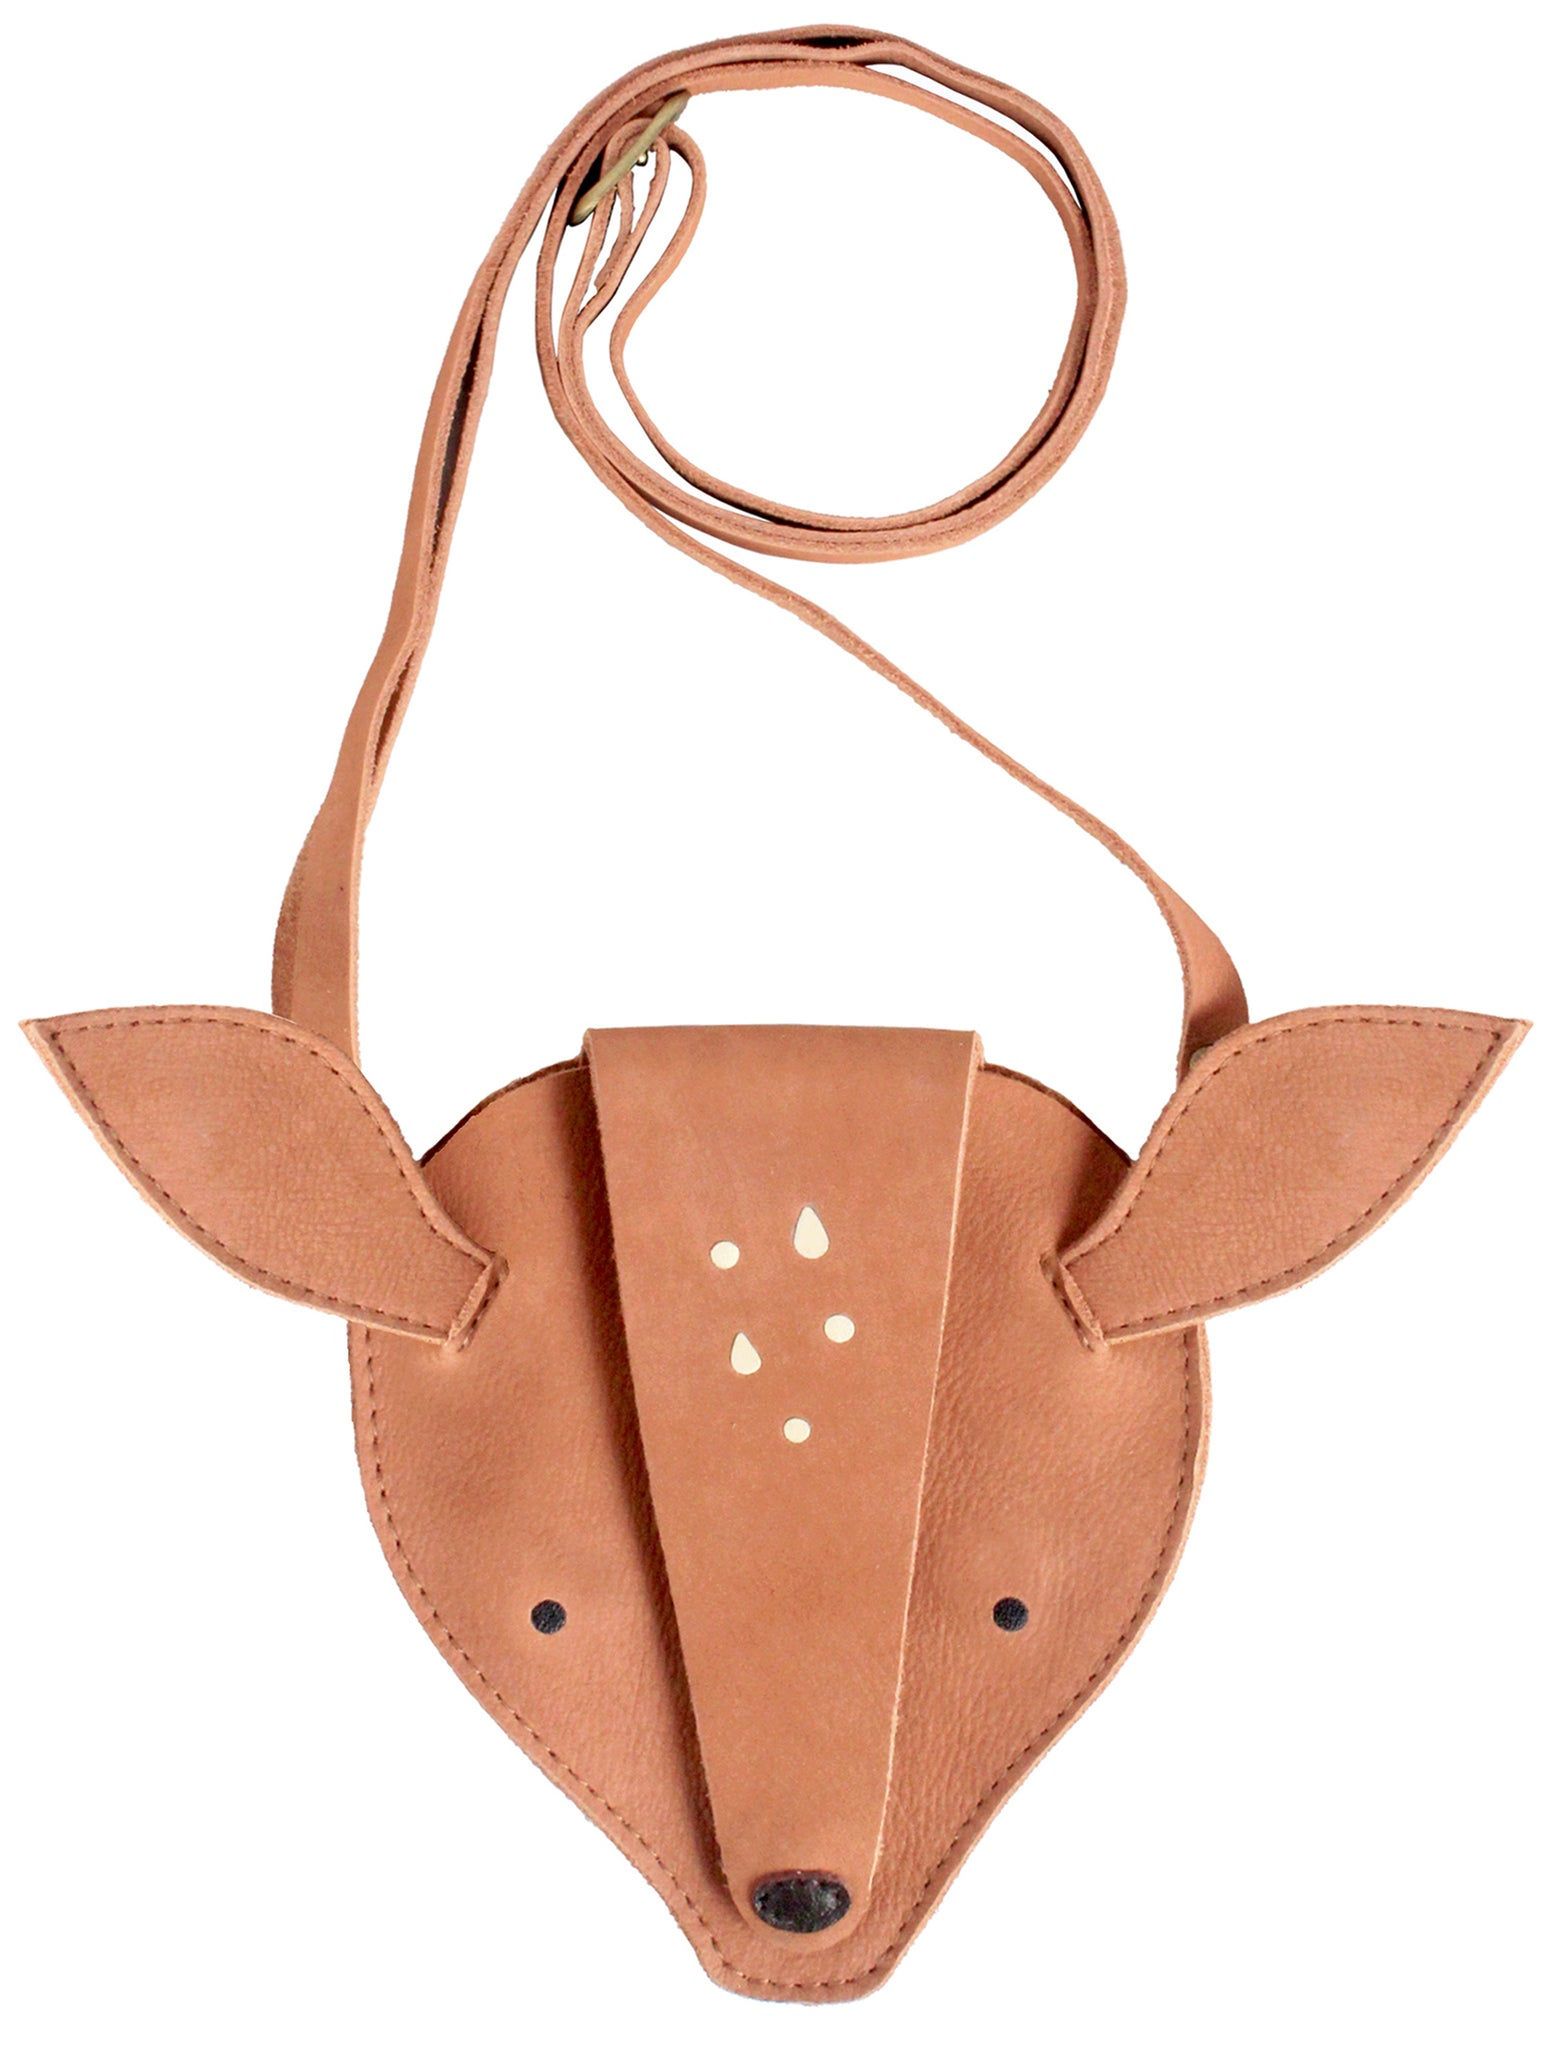 Donsje Leather Britta Purse - Deer Bags - Suzemu